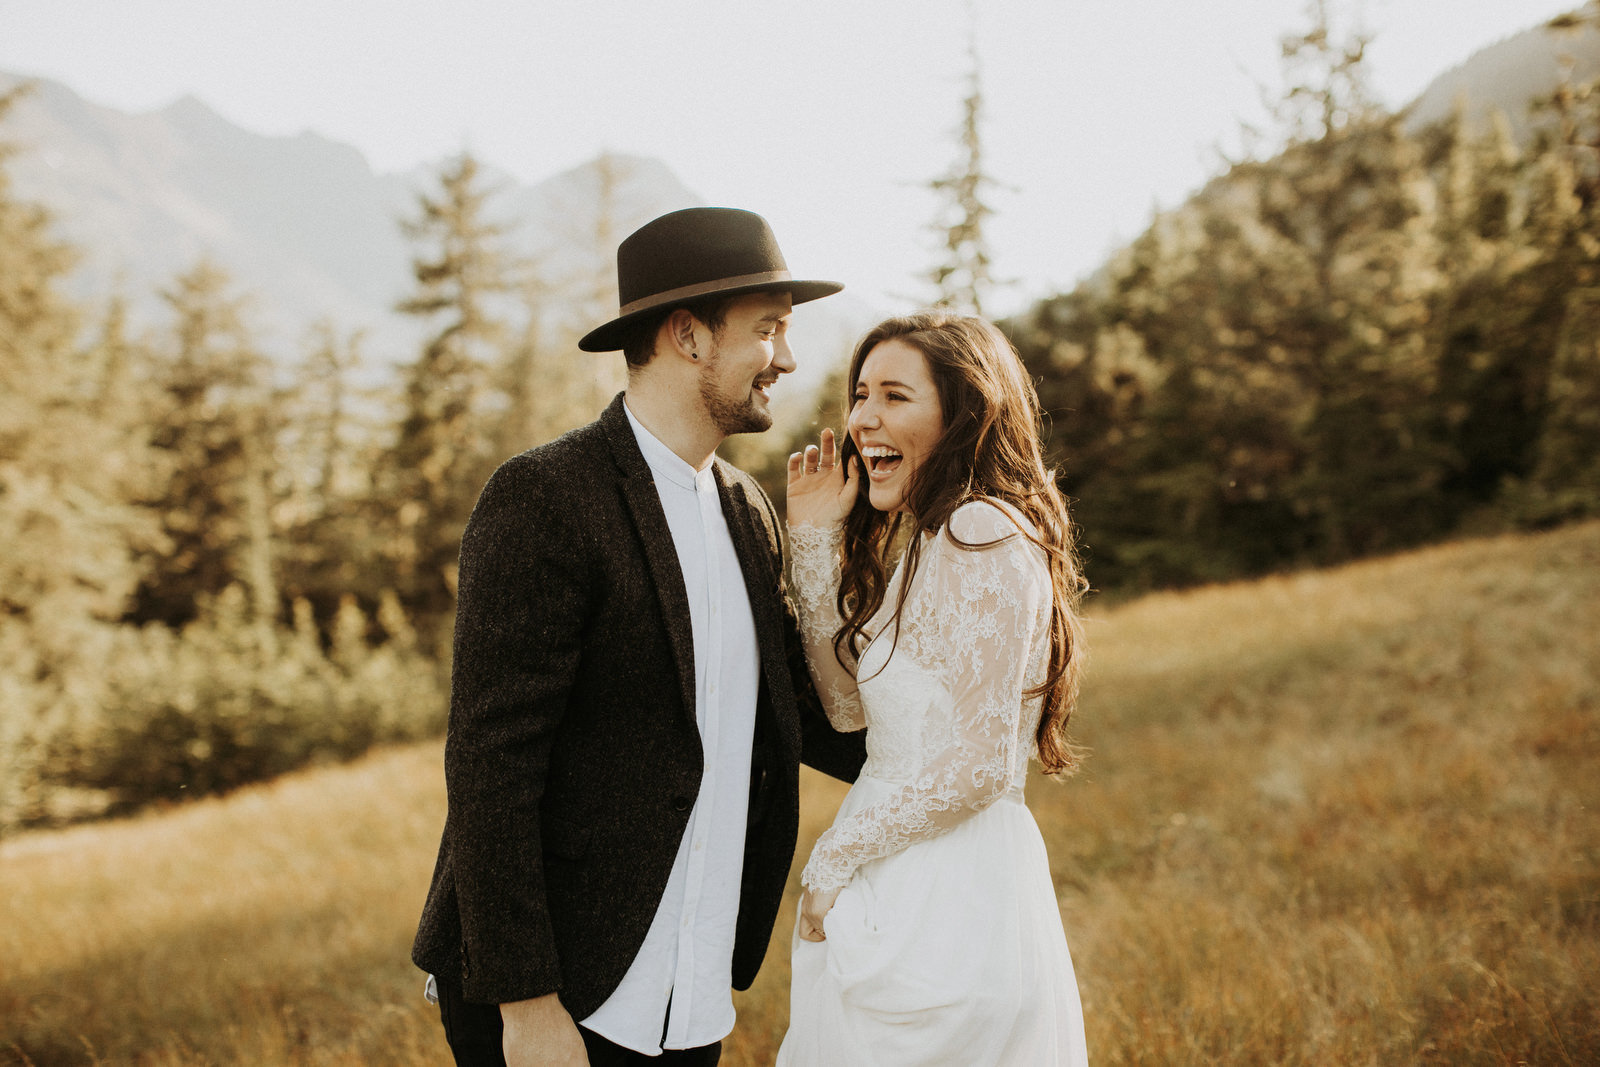 athena-and-camron-alaska-elopement-wedding-inspiration-india-earl-athena-grace-glacier-lagoon-wedding48